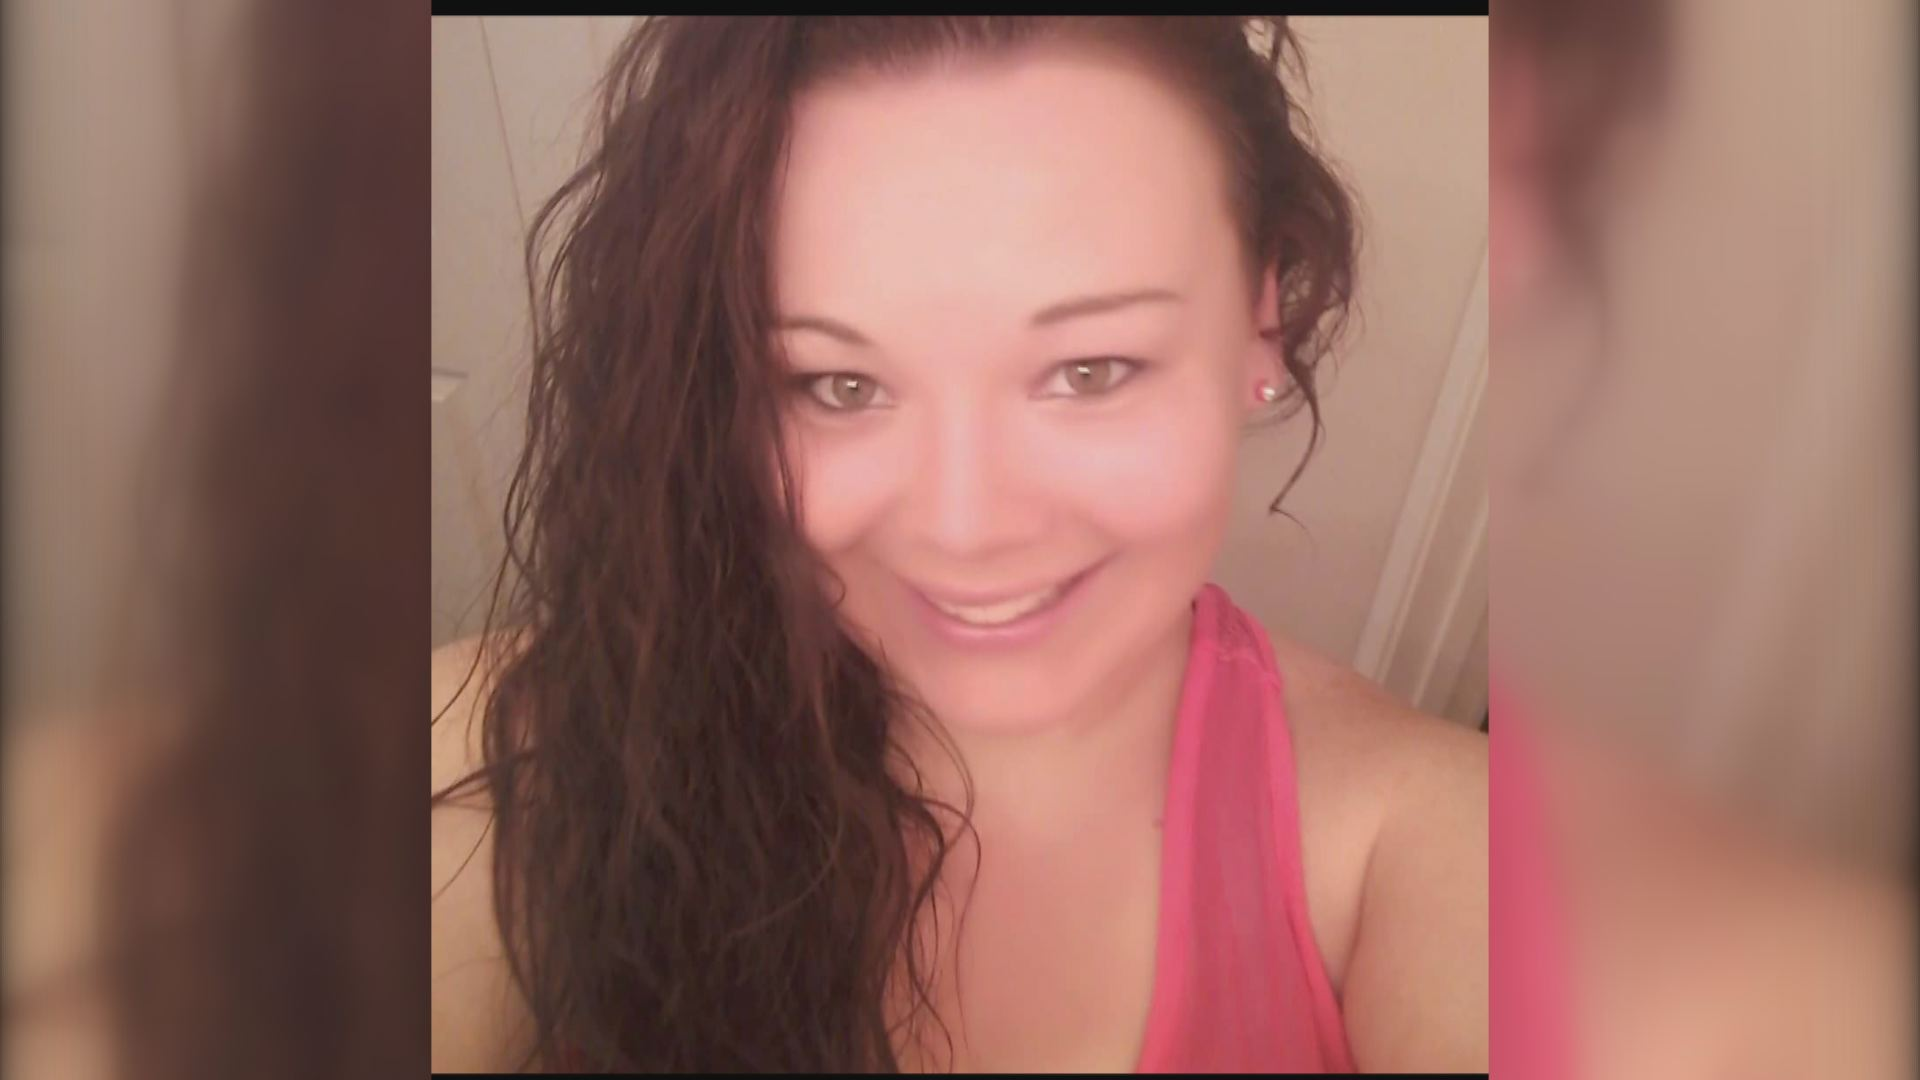 LaKeesha Neece, 27, who was found dead in her home January 18. (WCYB)